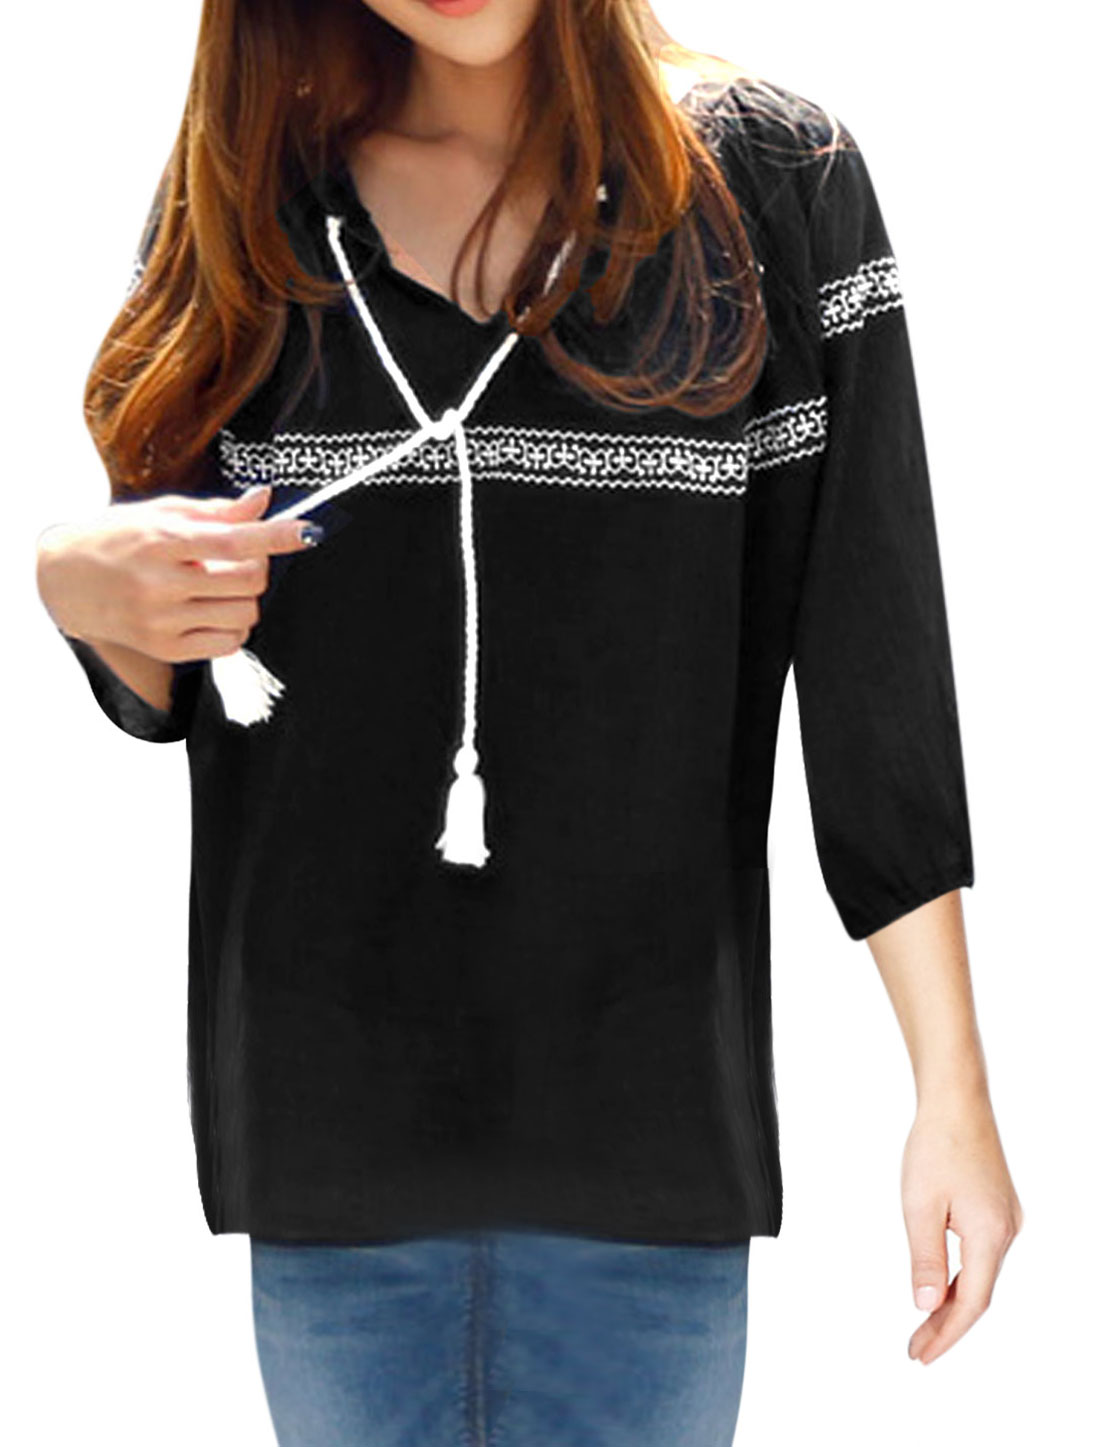 Lady Raglan Sleeve Elastic Cuffs Embroidery Detail Chiffon Shirt Black XS